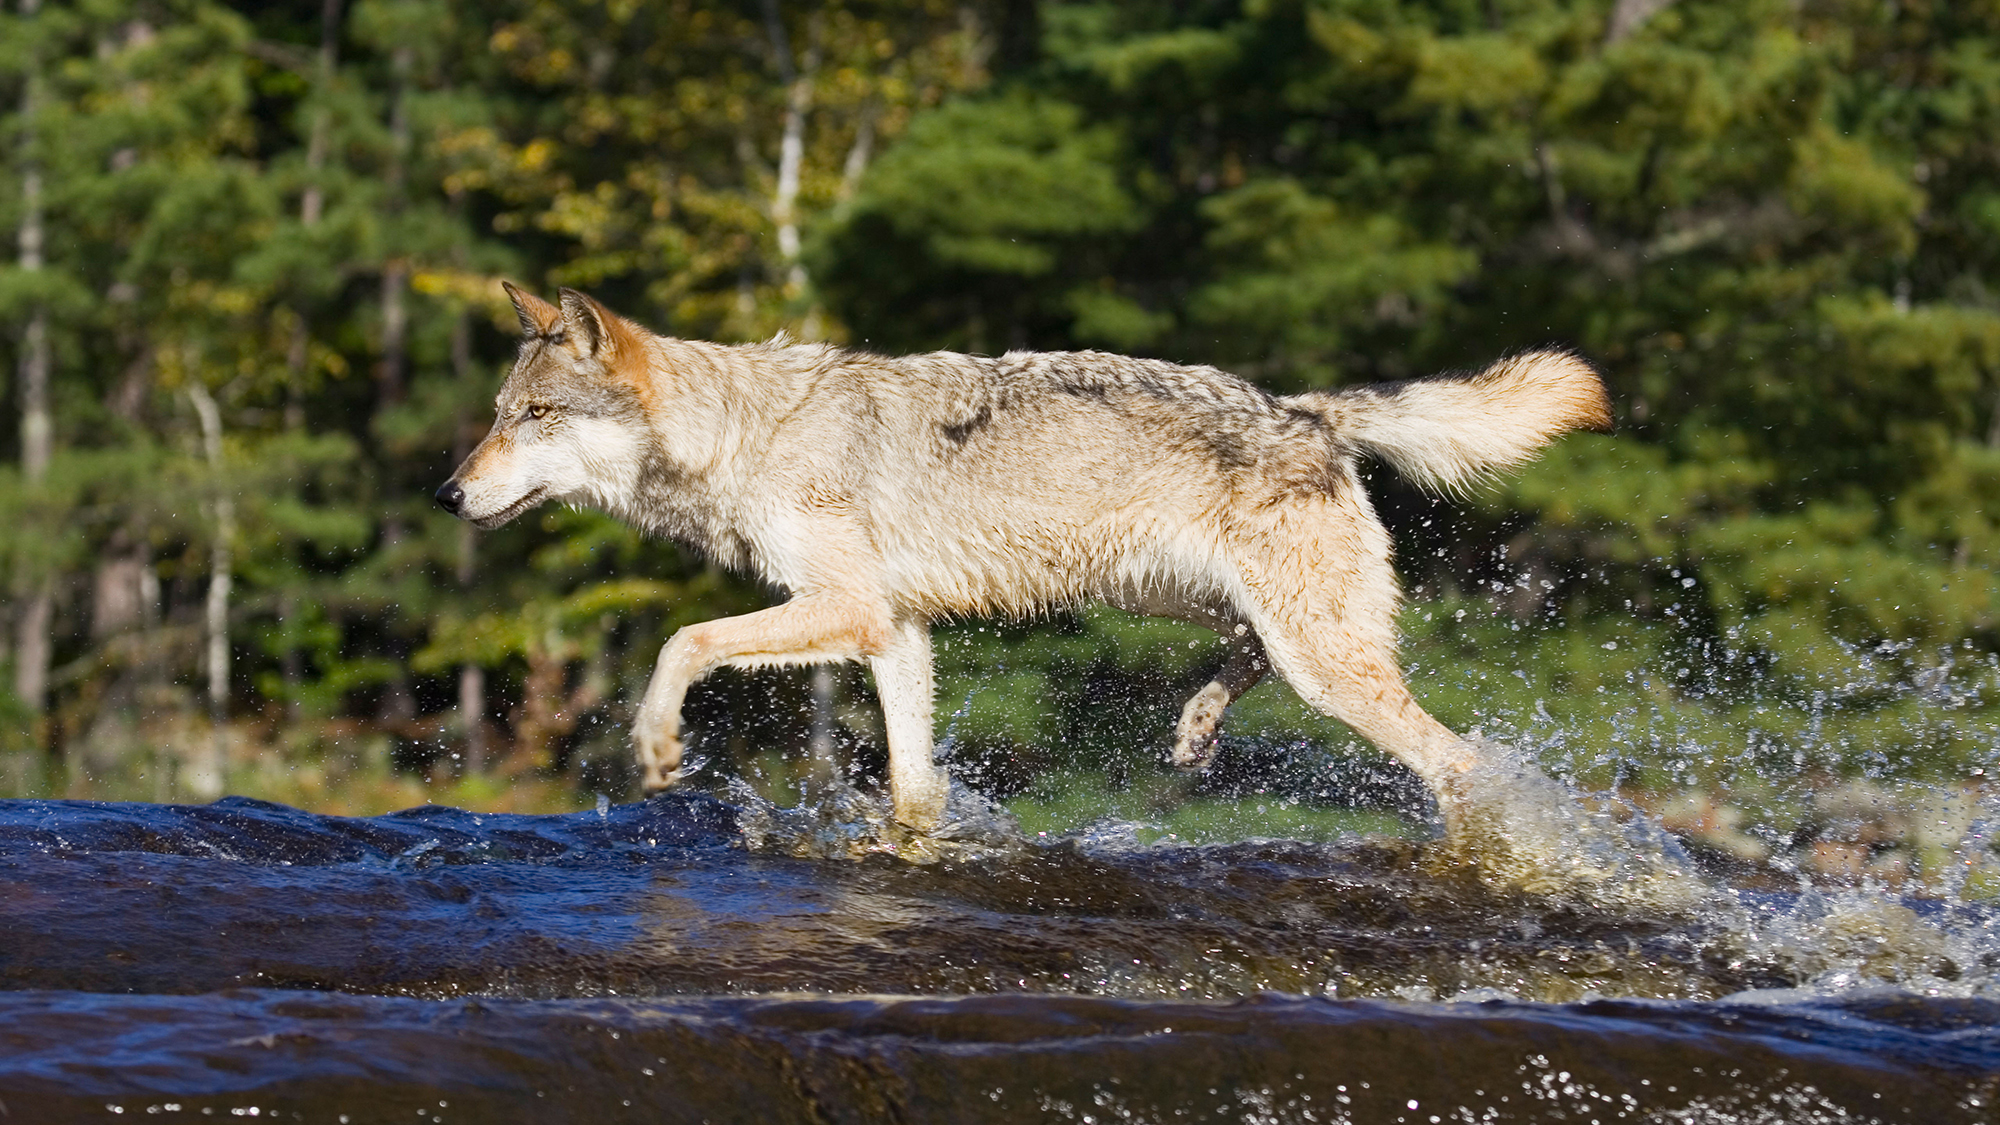 AXYERM Gray wolf (Canis lupus) running through water, in captivity, Minnesota Wildlife Connection, Sandstone, Minnesota, USA